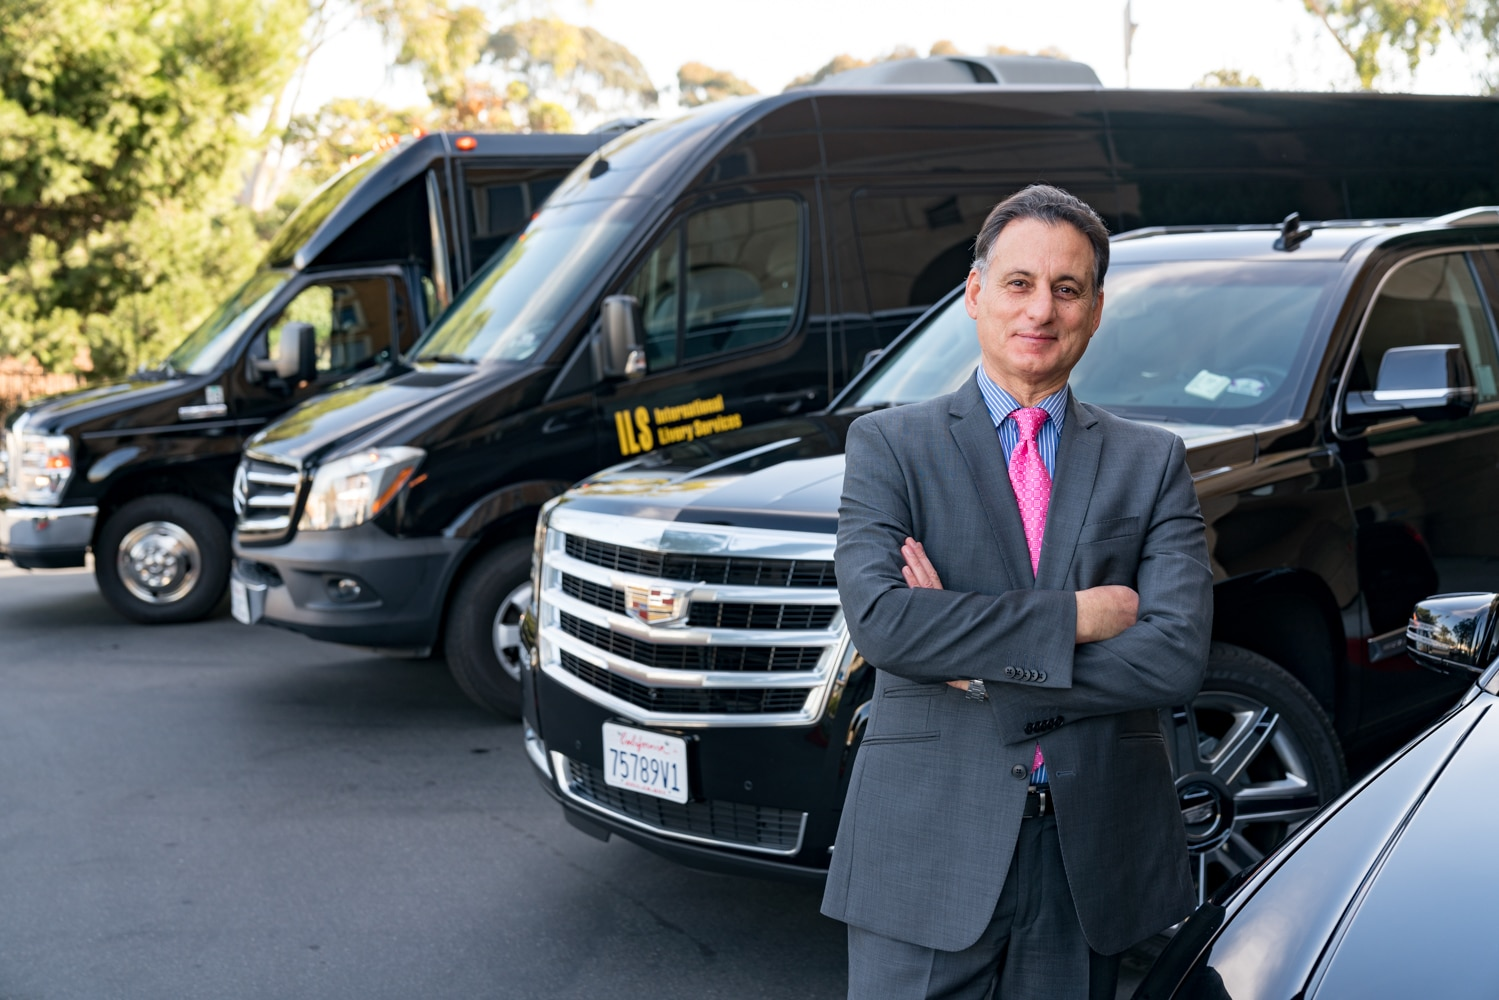 Chauffeur limo services ILS